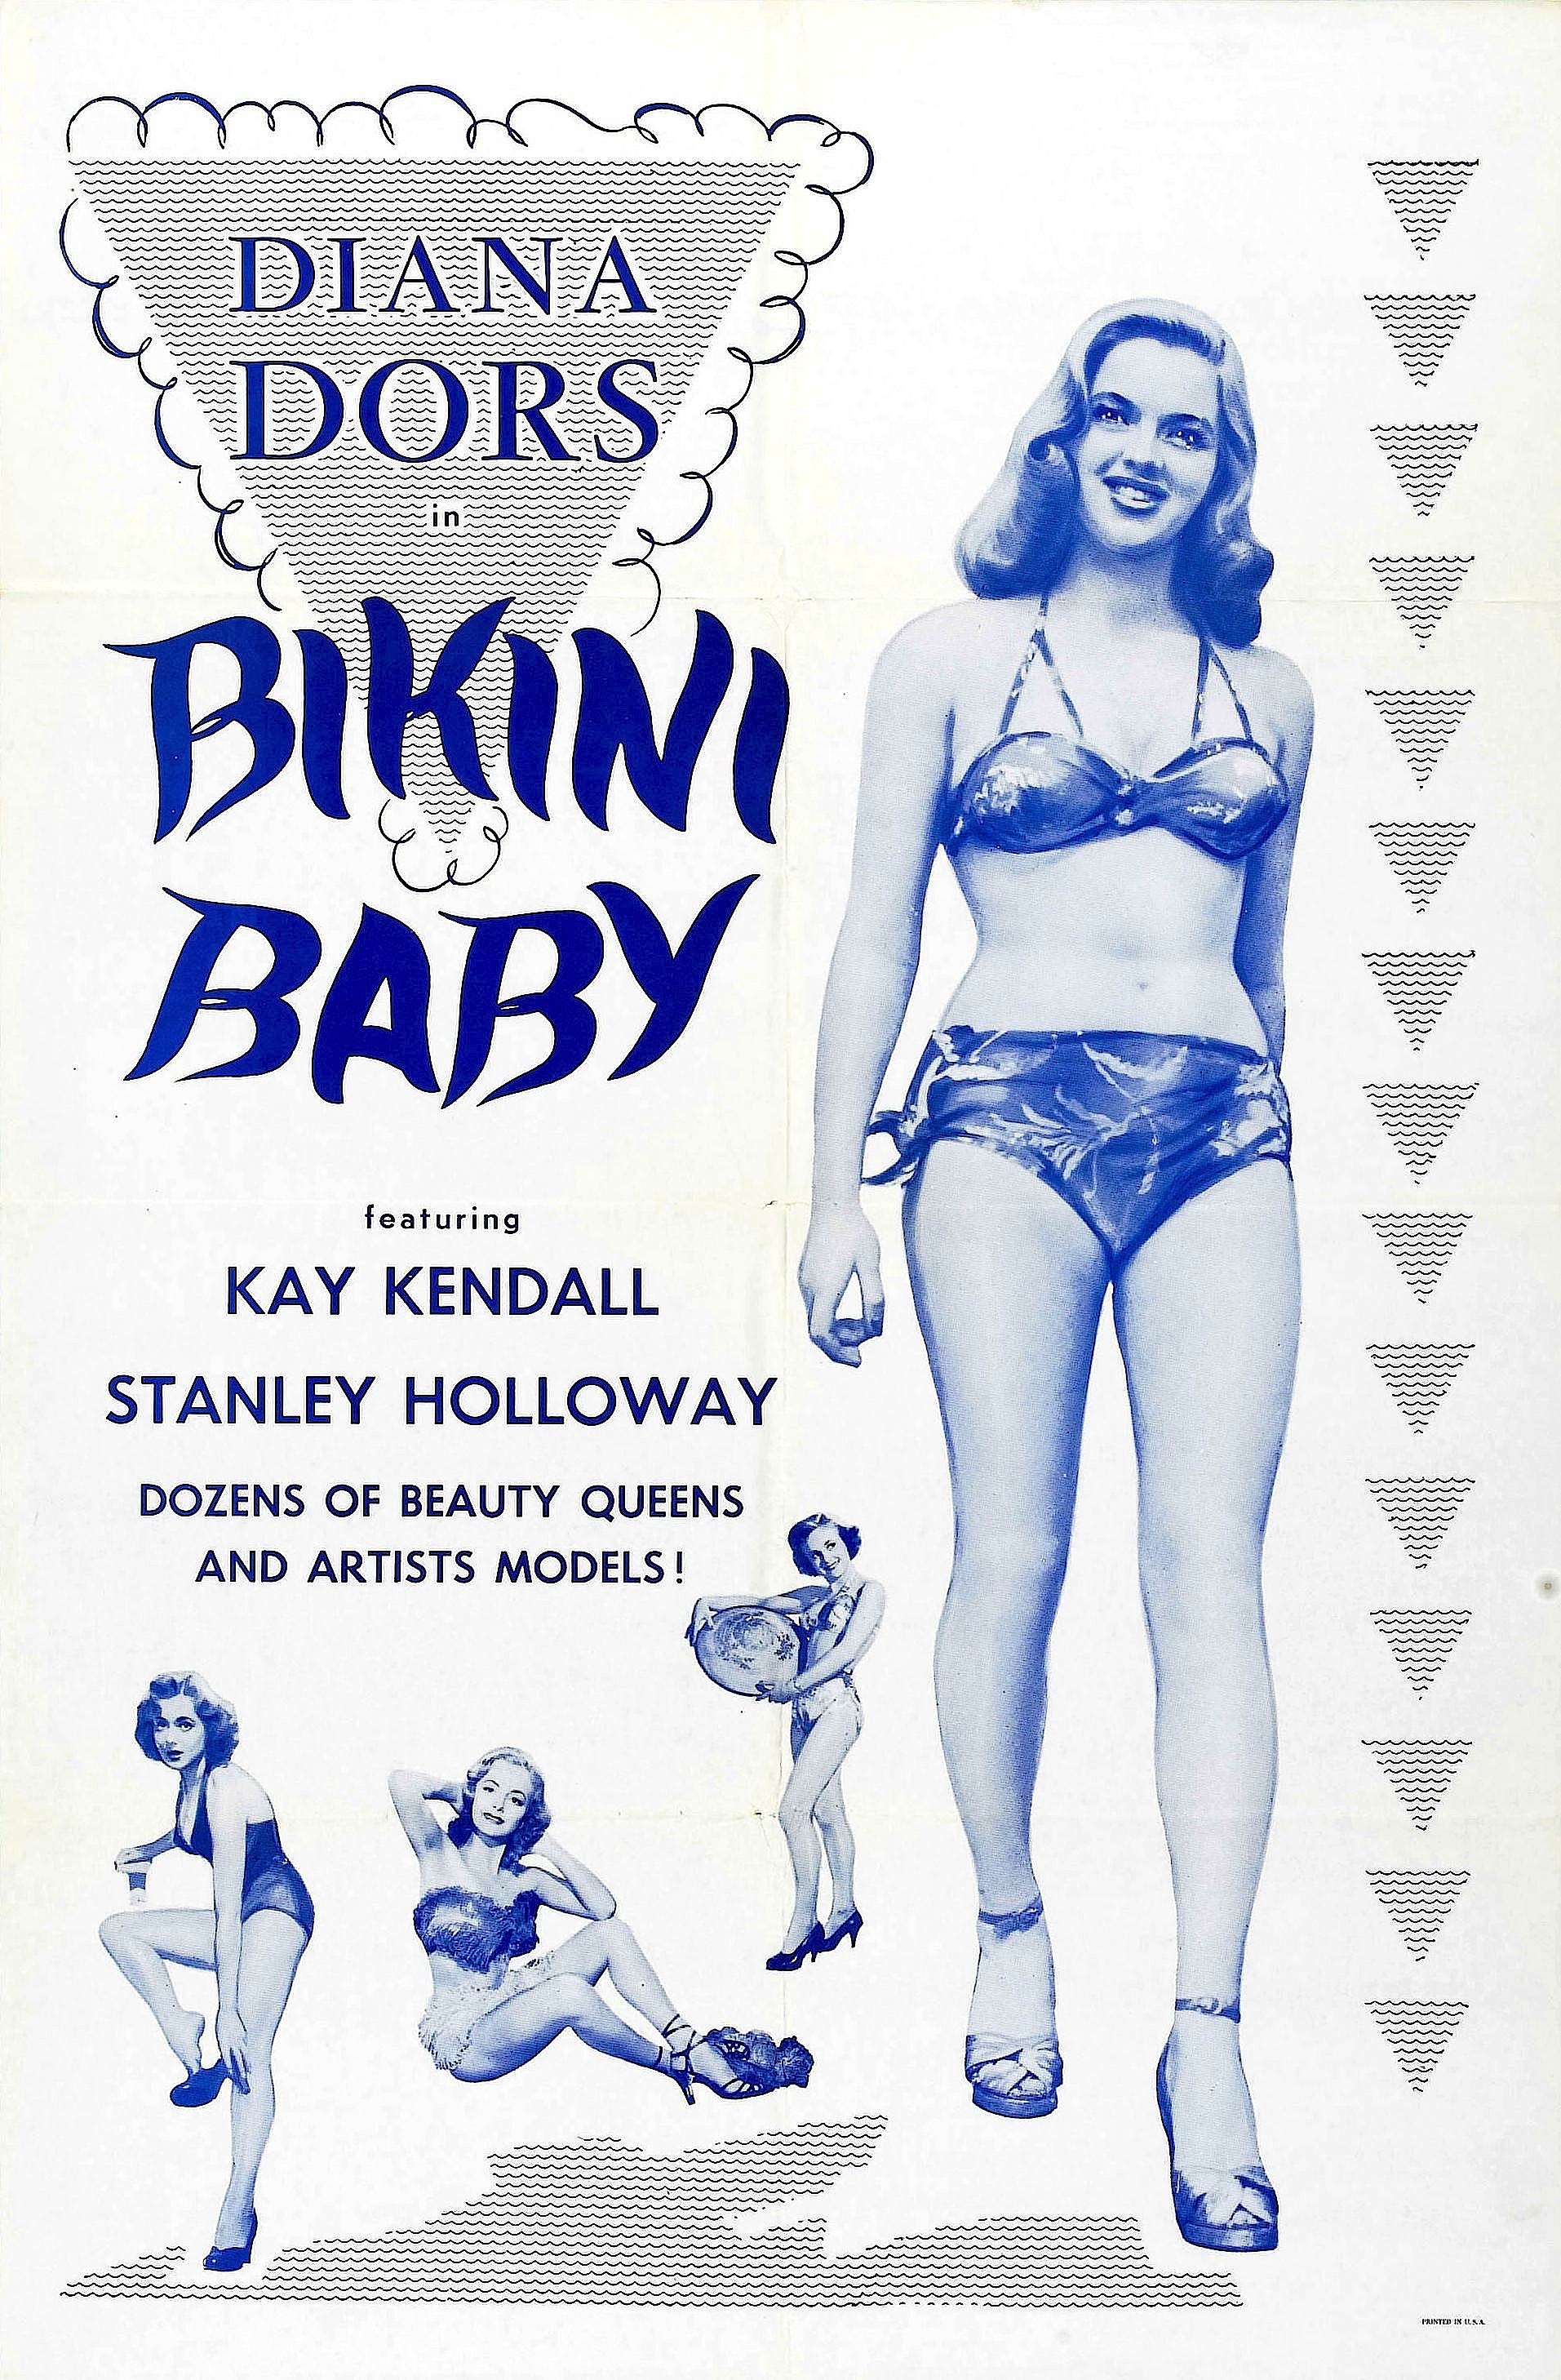 Bikini bay tv movie